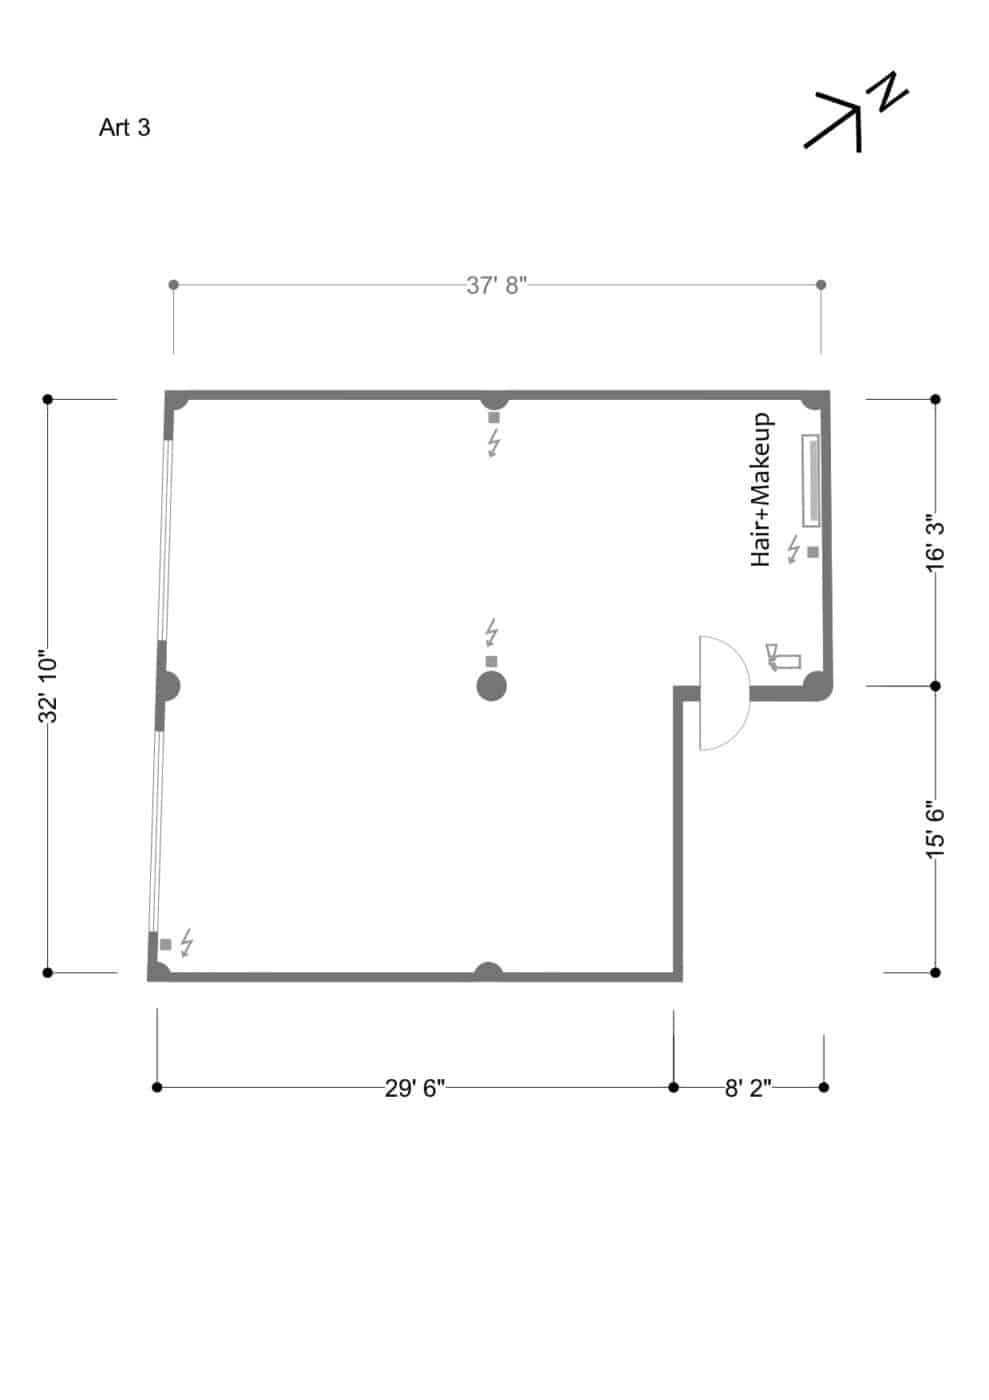 Art 3 floor plan - updated March 2019